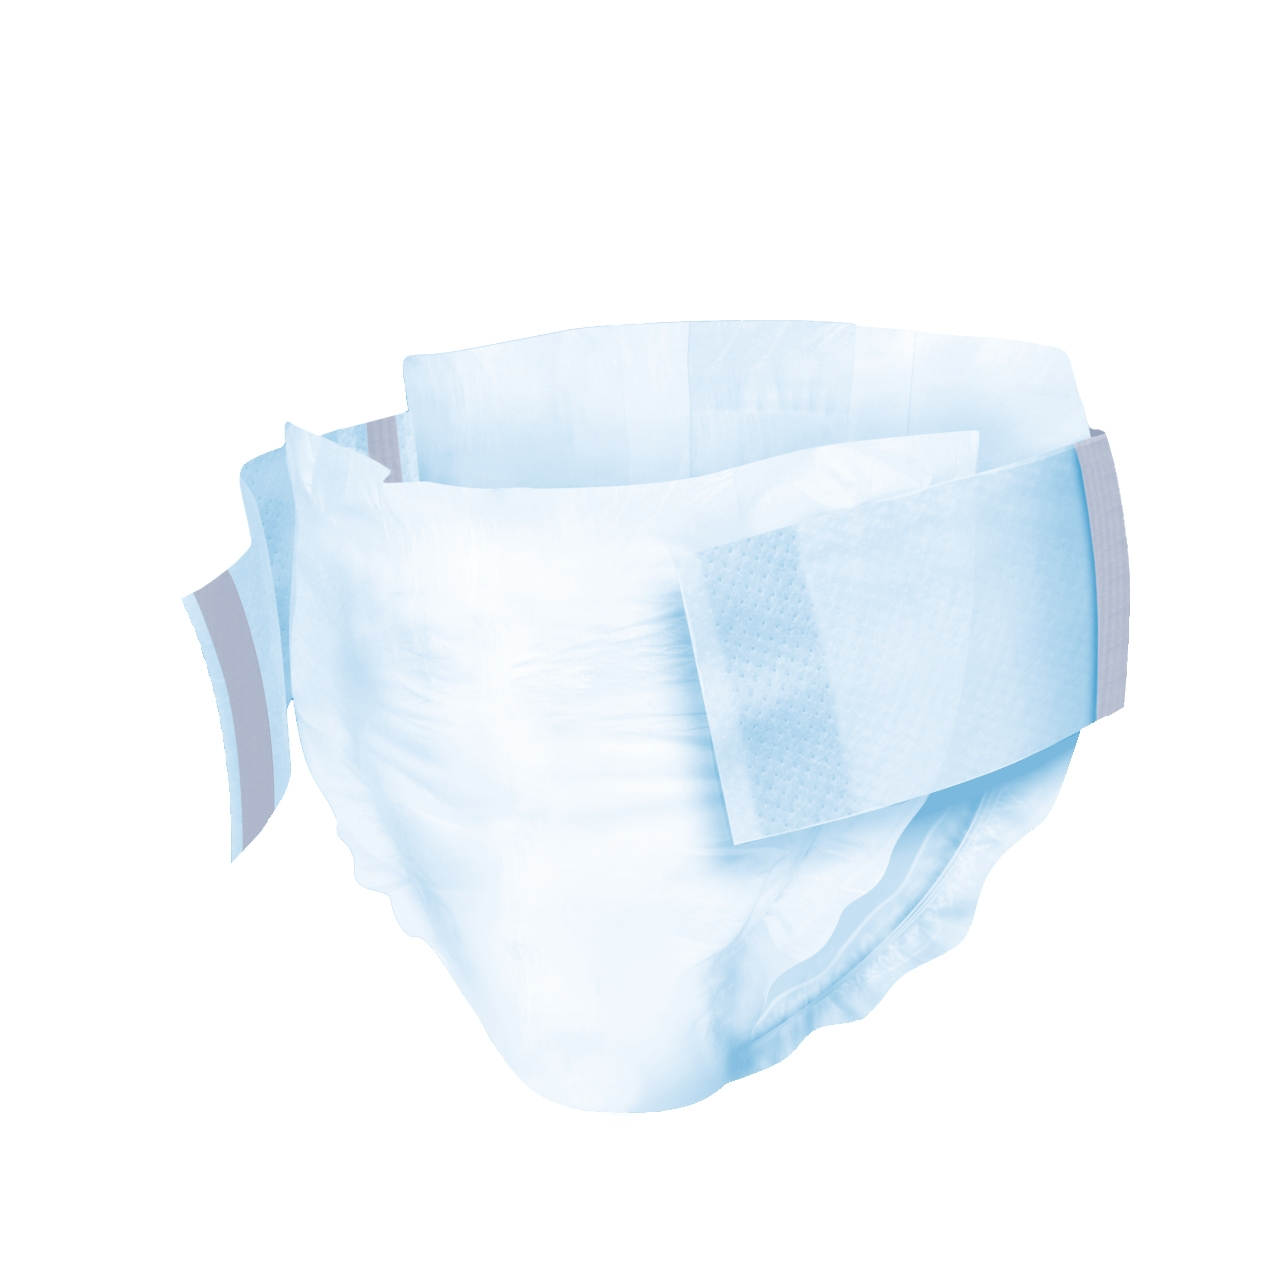 Disposable Bariatric Pads